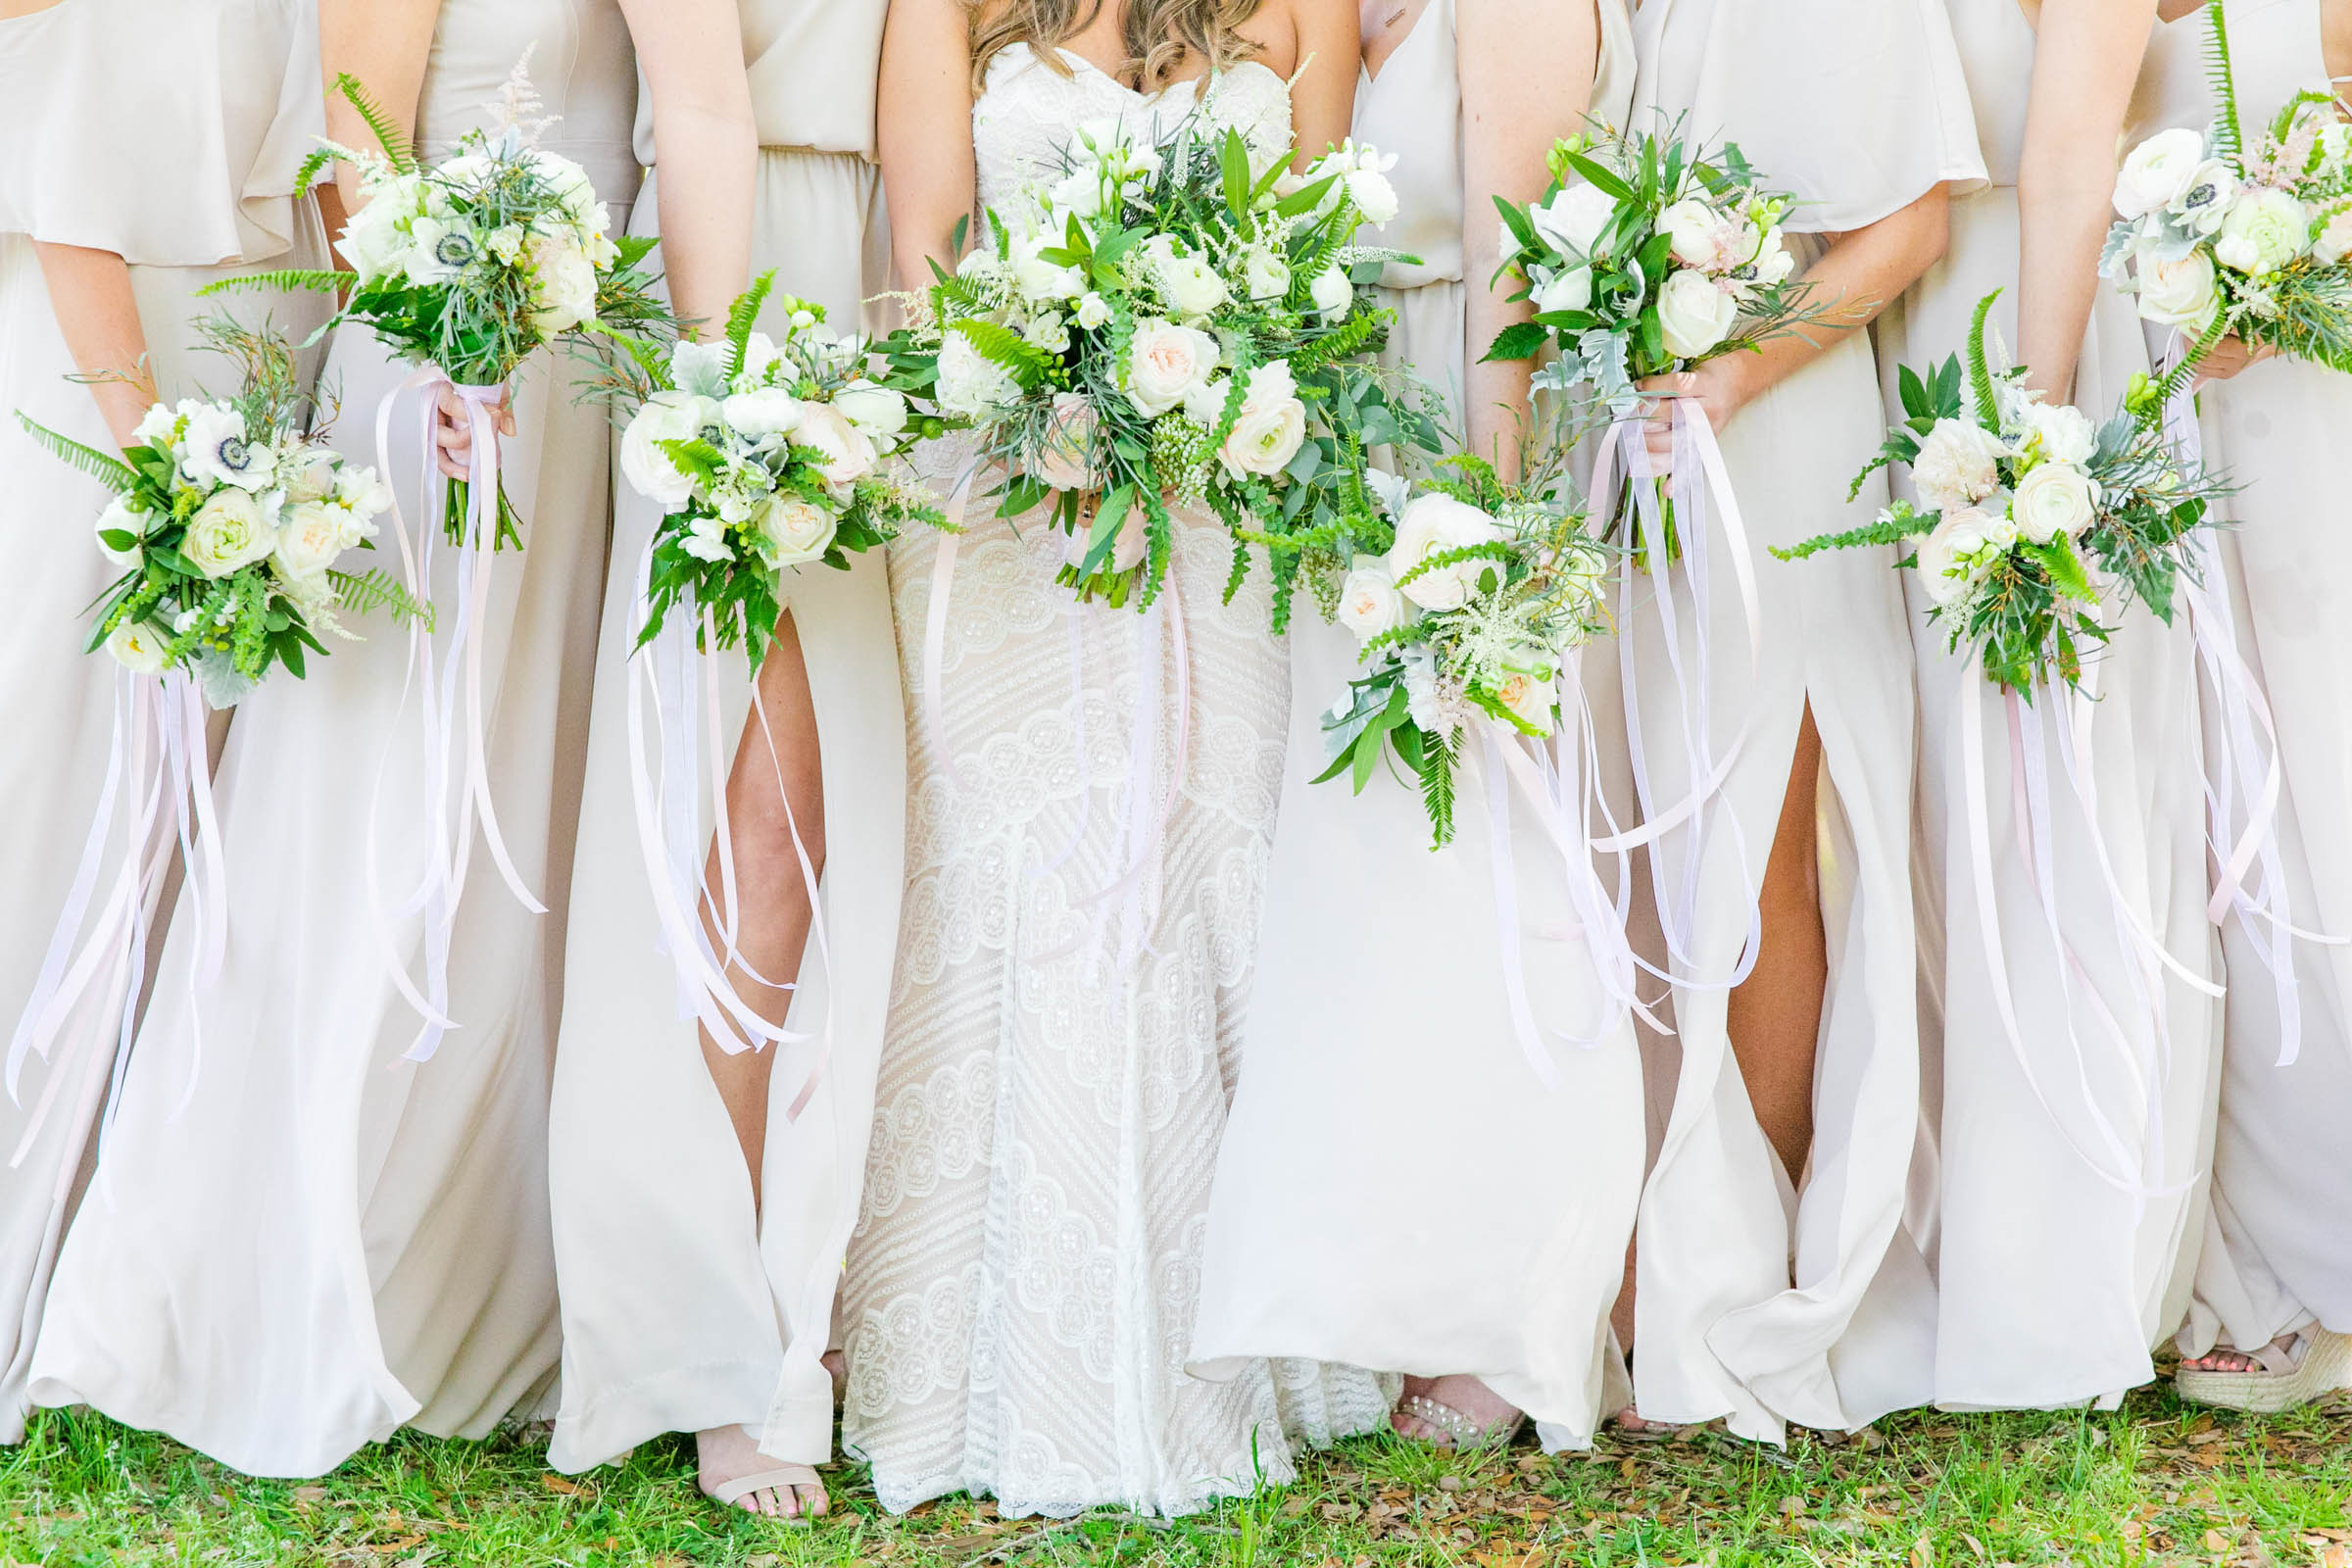 Off-white flowing bridal party dresses and floral bouquets - photographed by Dana Cubbage - South Carolina